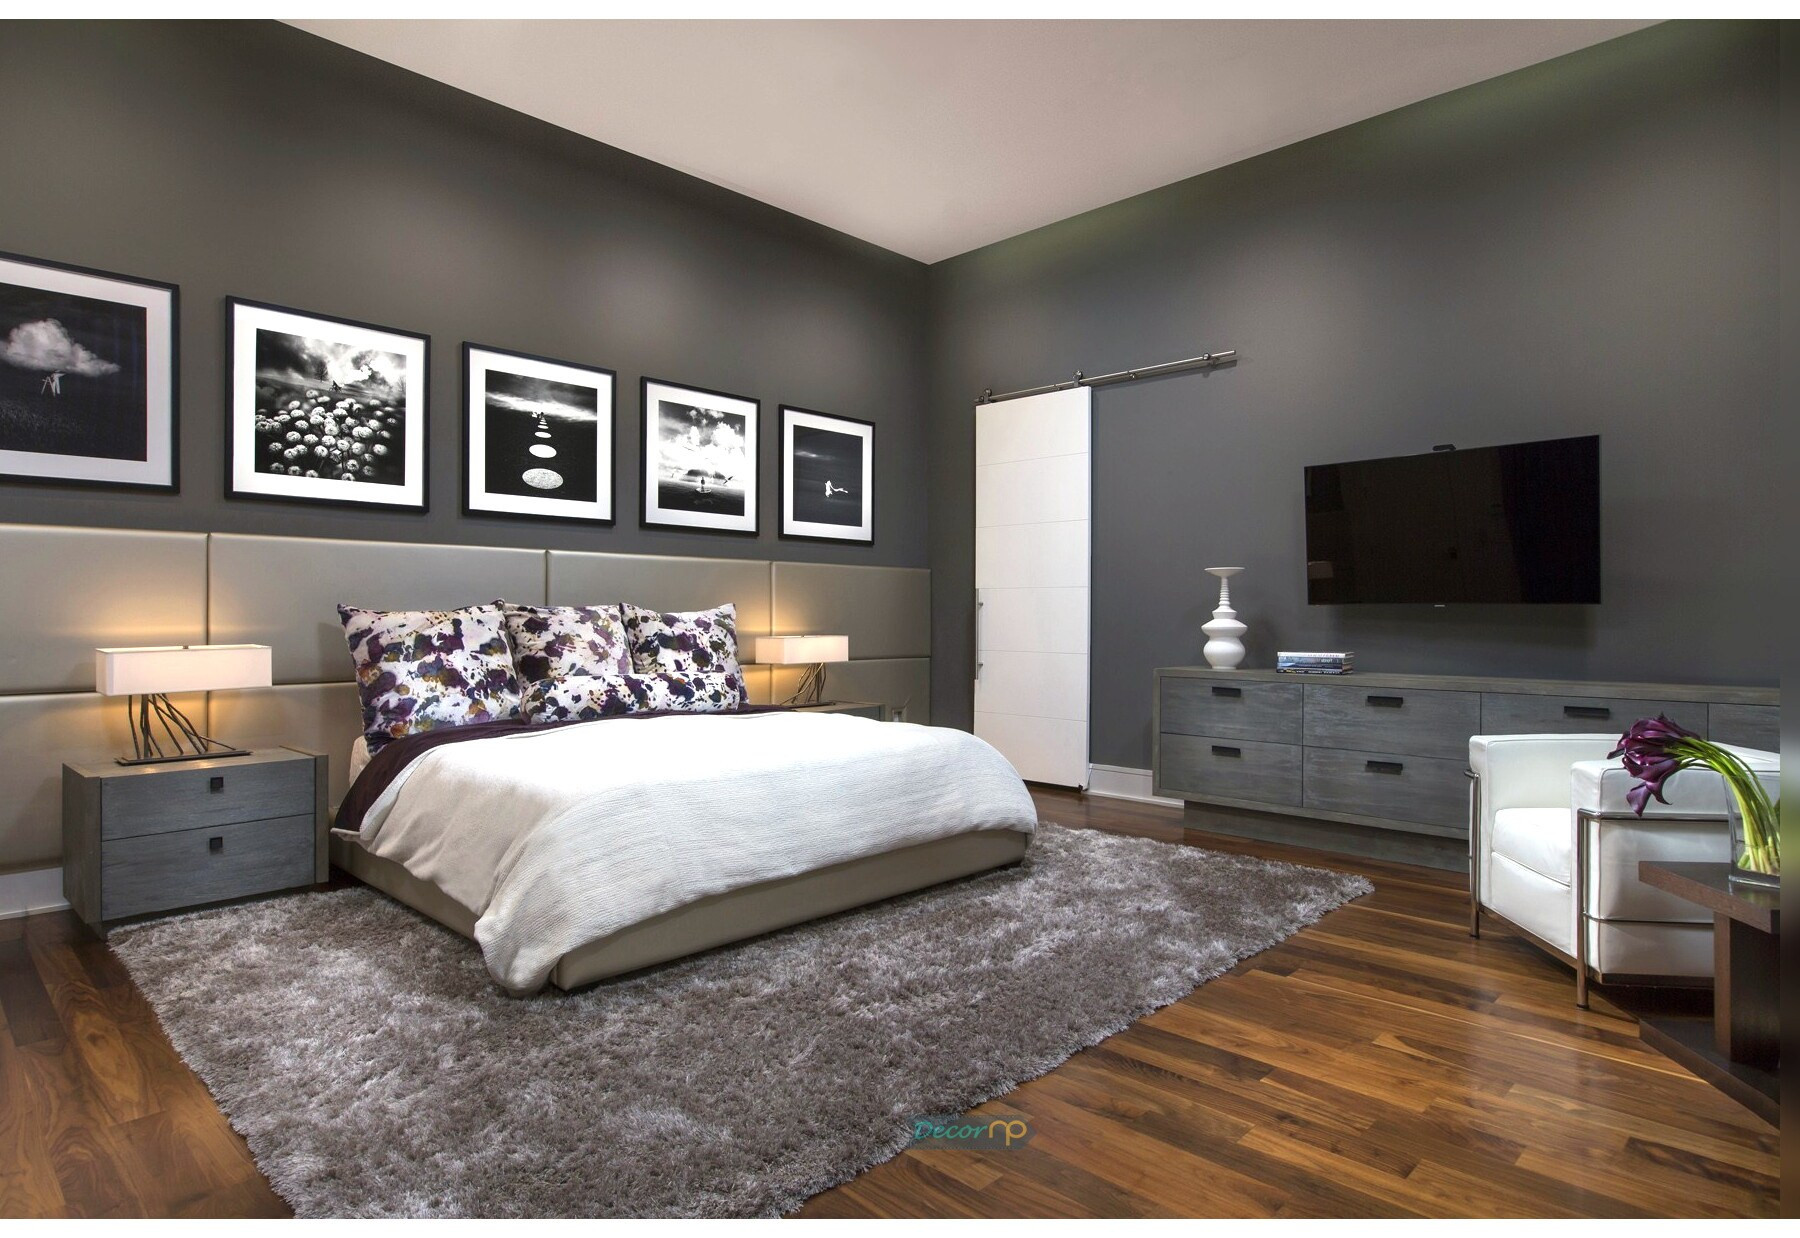 Best ideas about Bedroom Colors 2019 . Save or Pin Bedroom Colour Ideas 2019 Now.